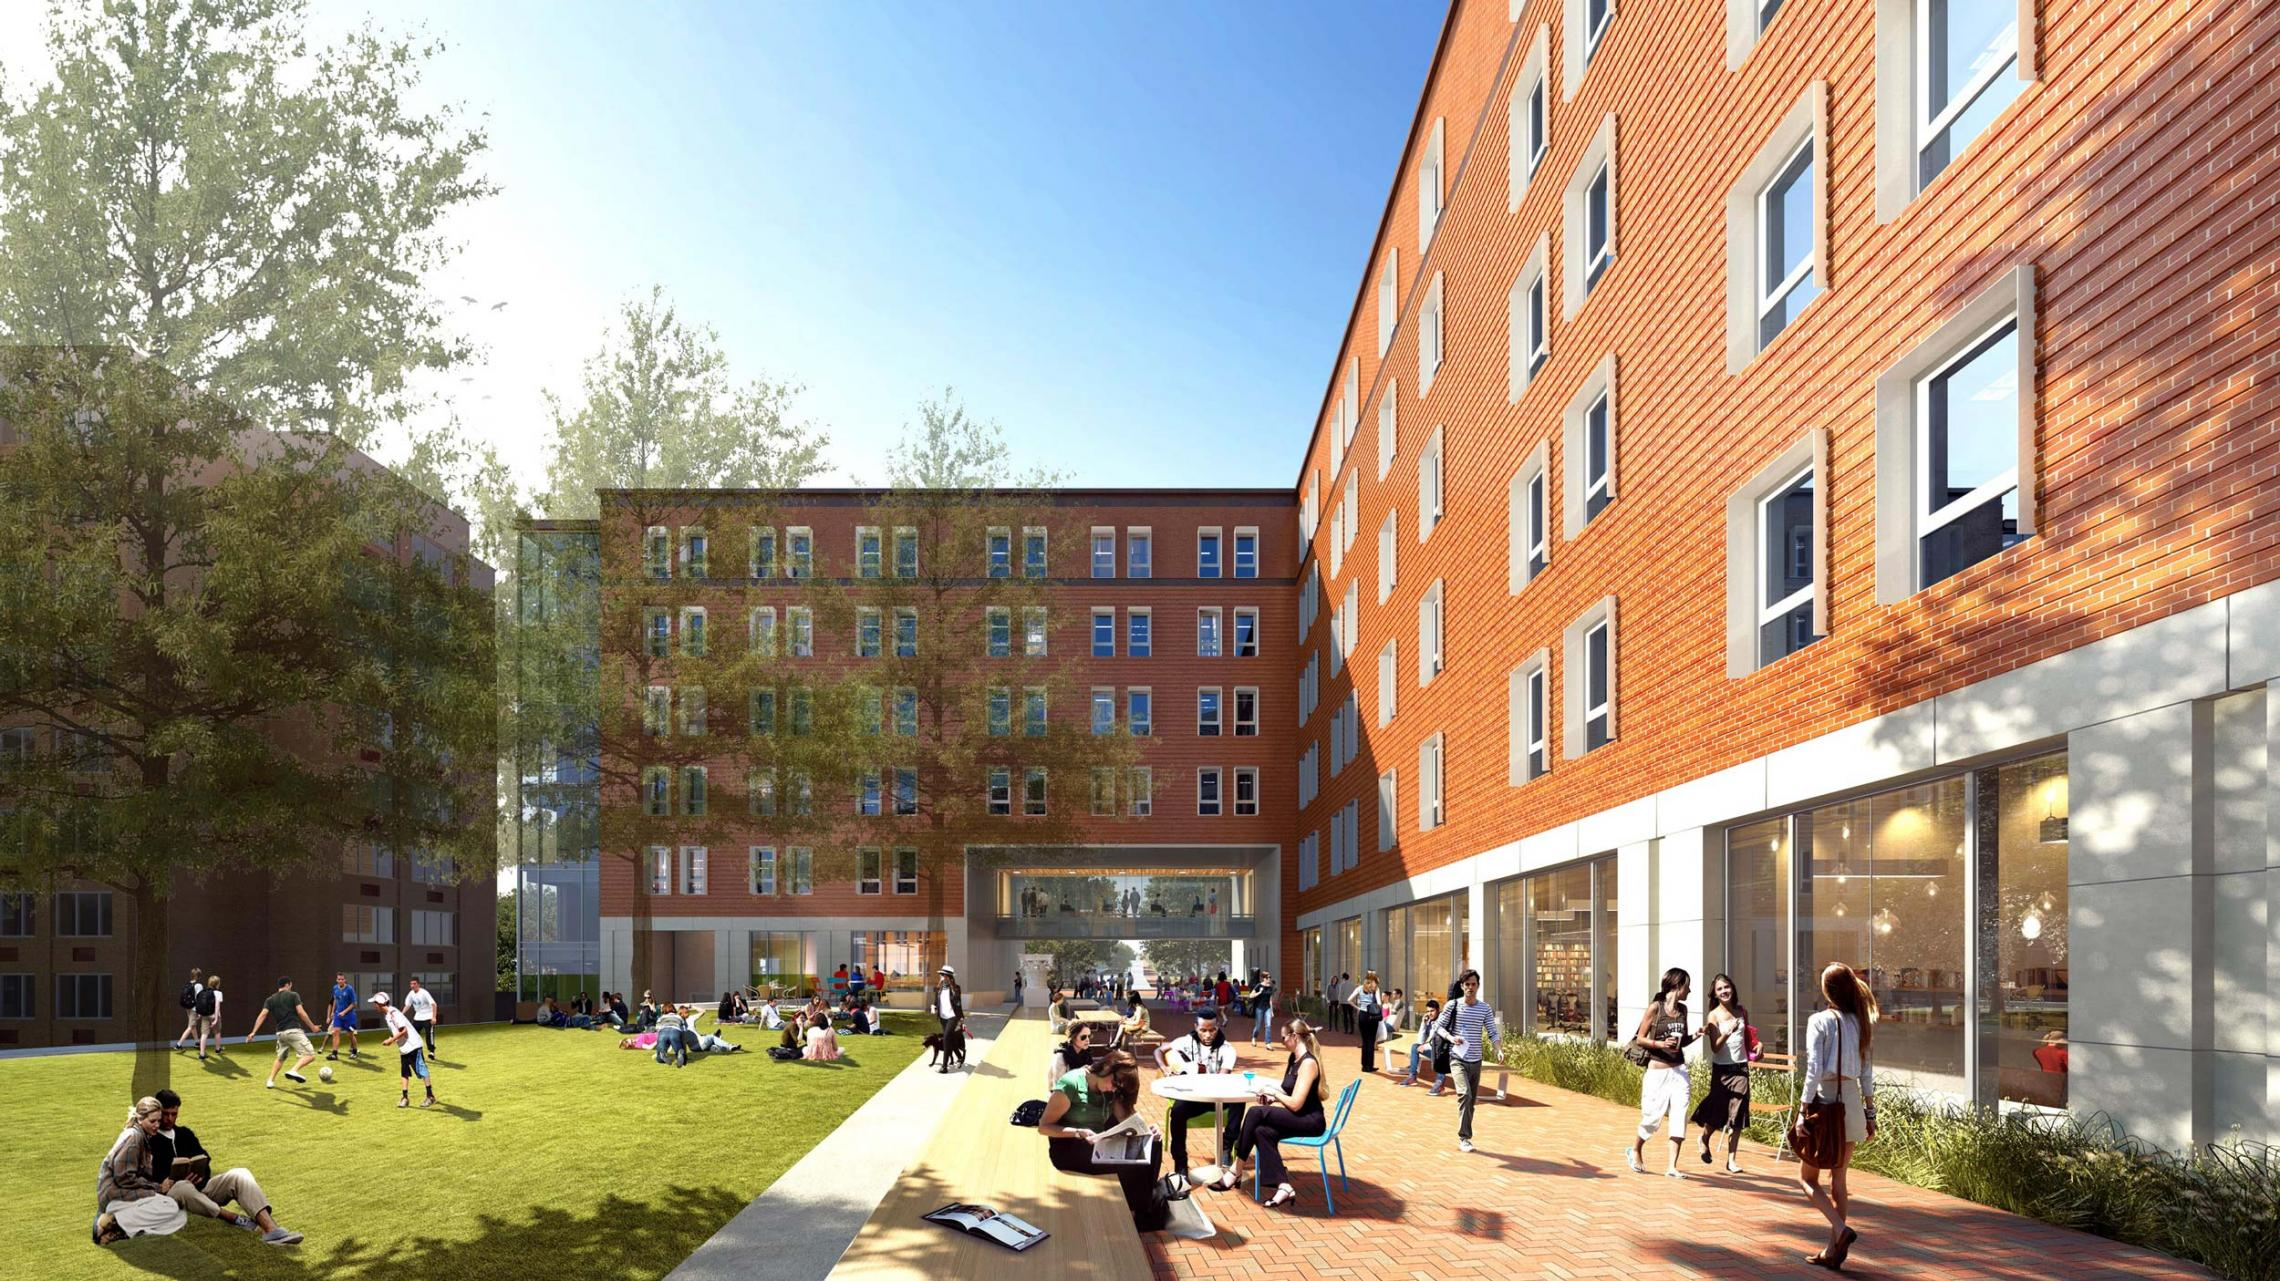 Bond House, a new upper-class student residence hall opening this fall, will serve as the anchor of a newly planned, sustainability-focused, student-centered neighborhood on Brandon Avenue.